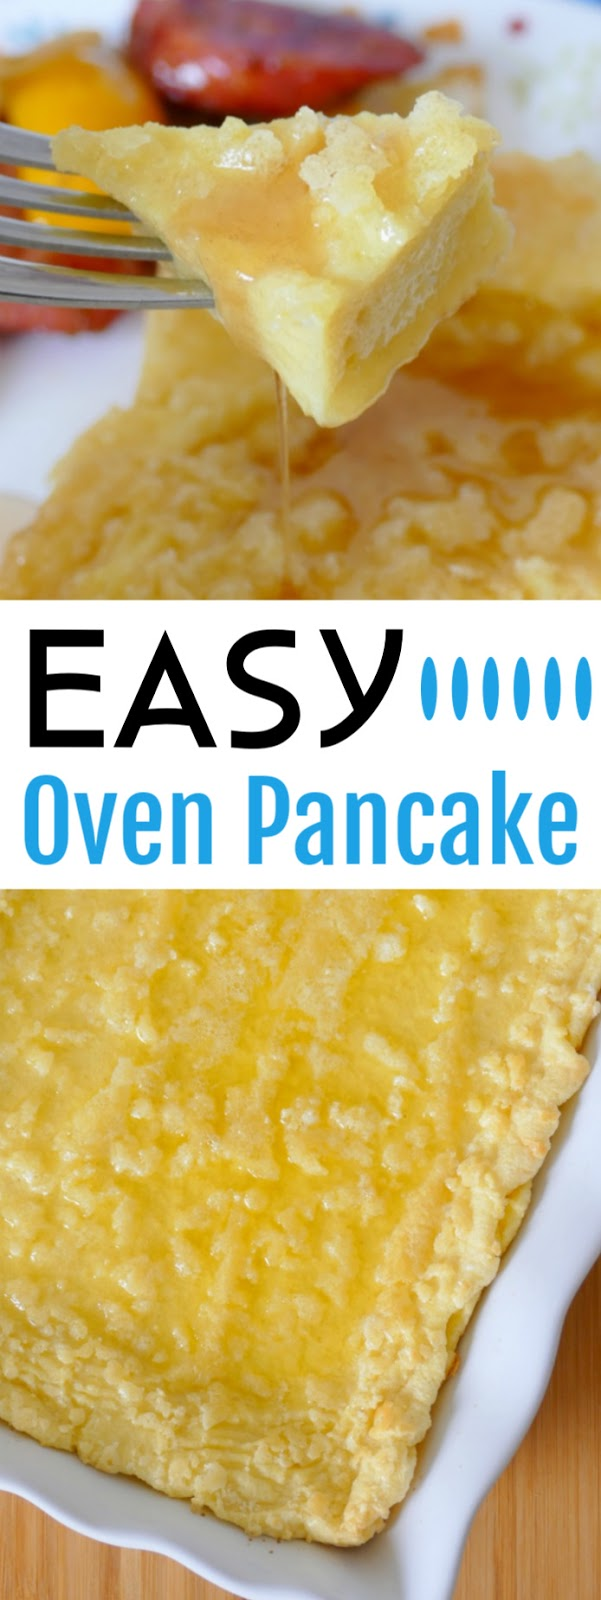 This simple to make and unique breakfast recipe uses basic fridge and pantry staples like flour, eggs, butter and milk and is super tasty! Top it with maple syrup, powdered sugar or fresh fruit to make it sweet! Serve with your breakfast favorites for a complete meal that will feed the whole family!